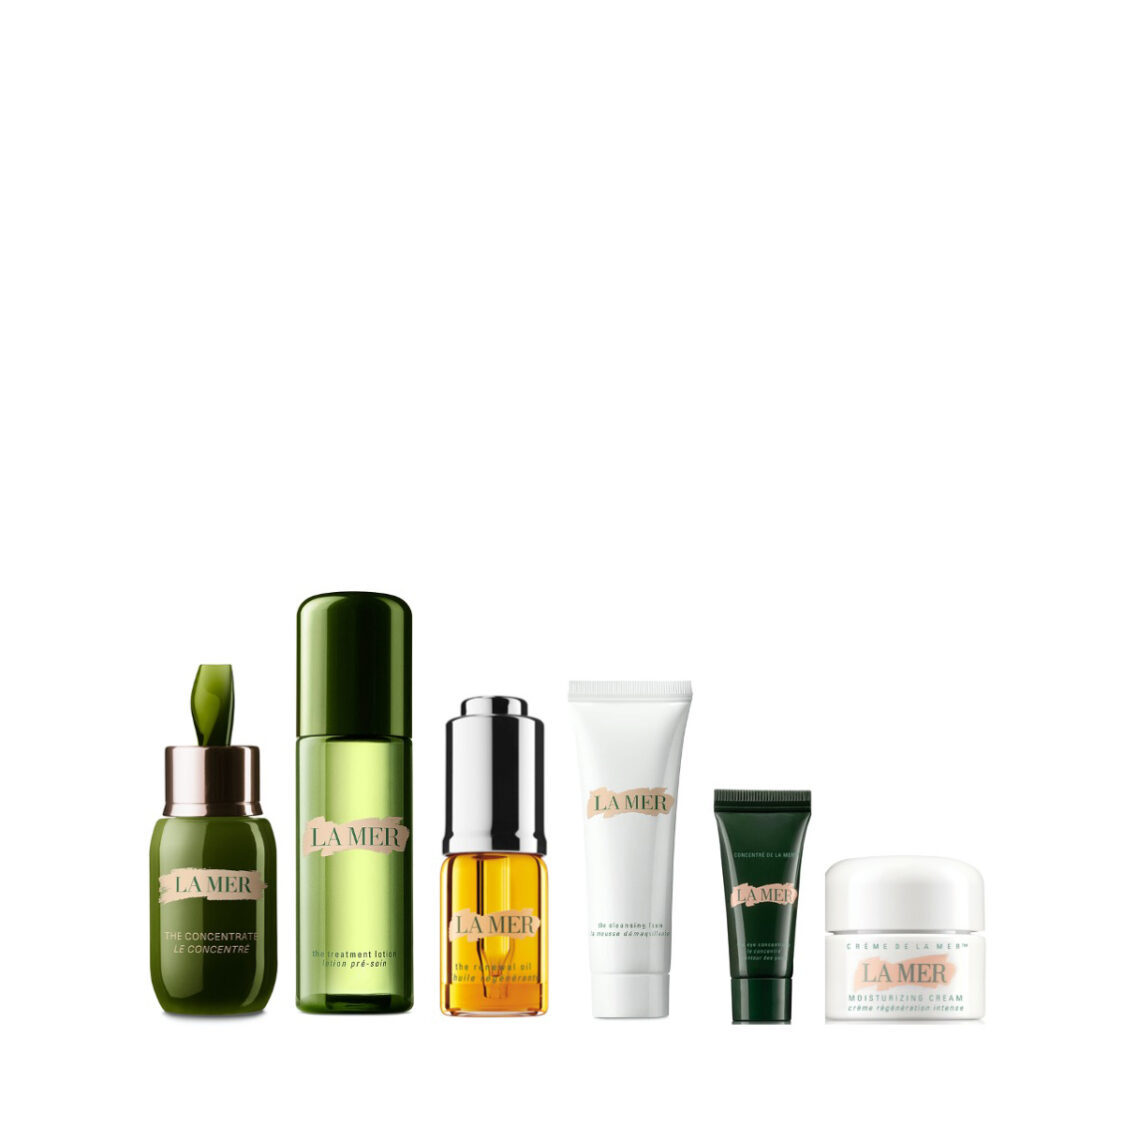 La Mer Hydrating Renewal Collection worth 871